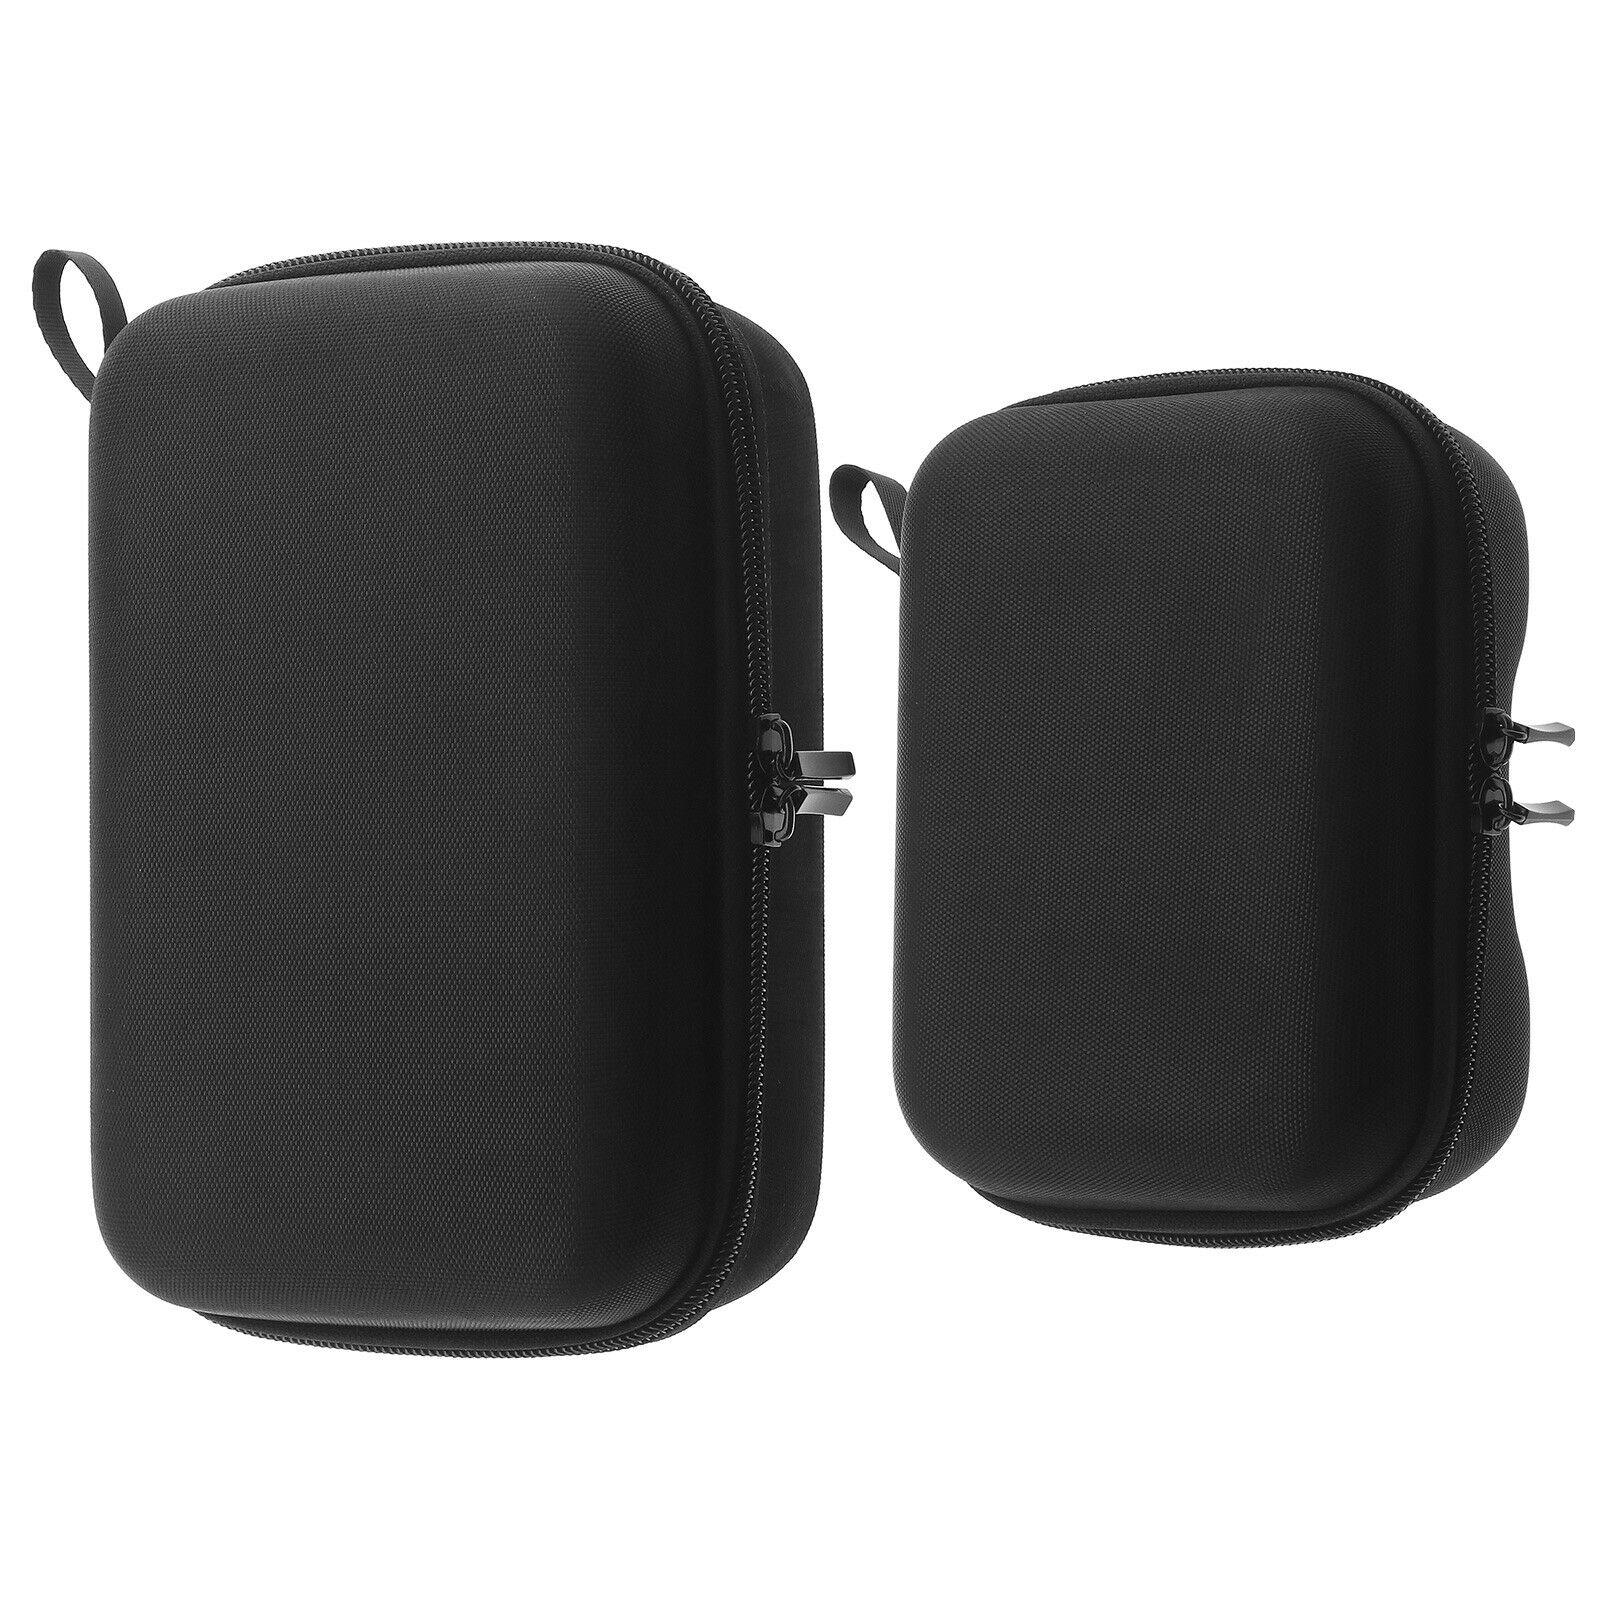 Drone Carrying Case Set for DJI Mavic Air 2 Quadcopter and Remote Control